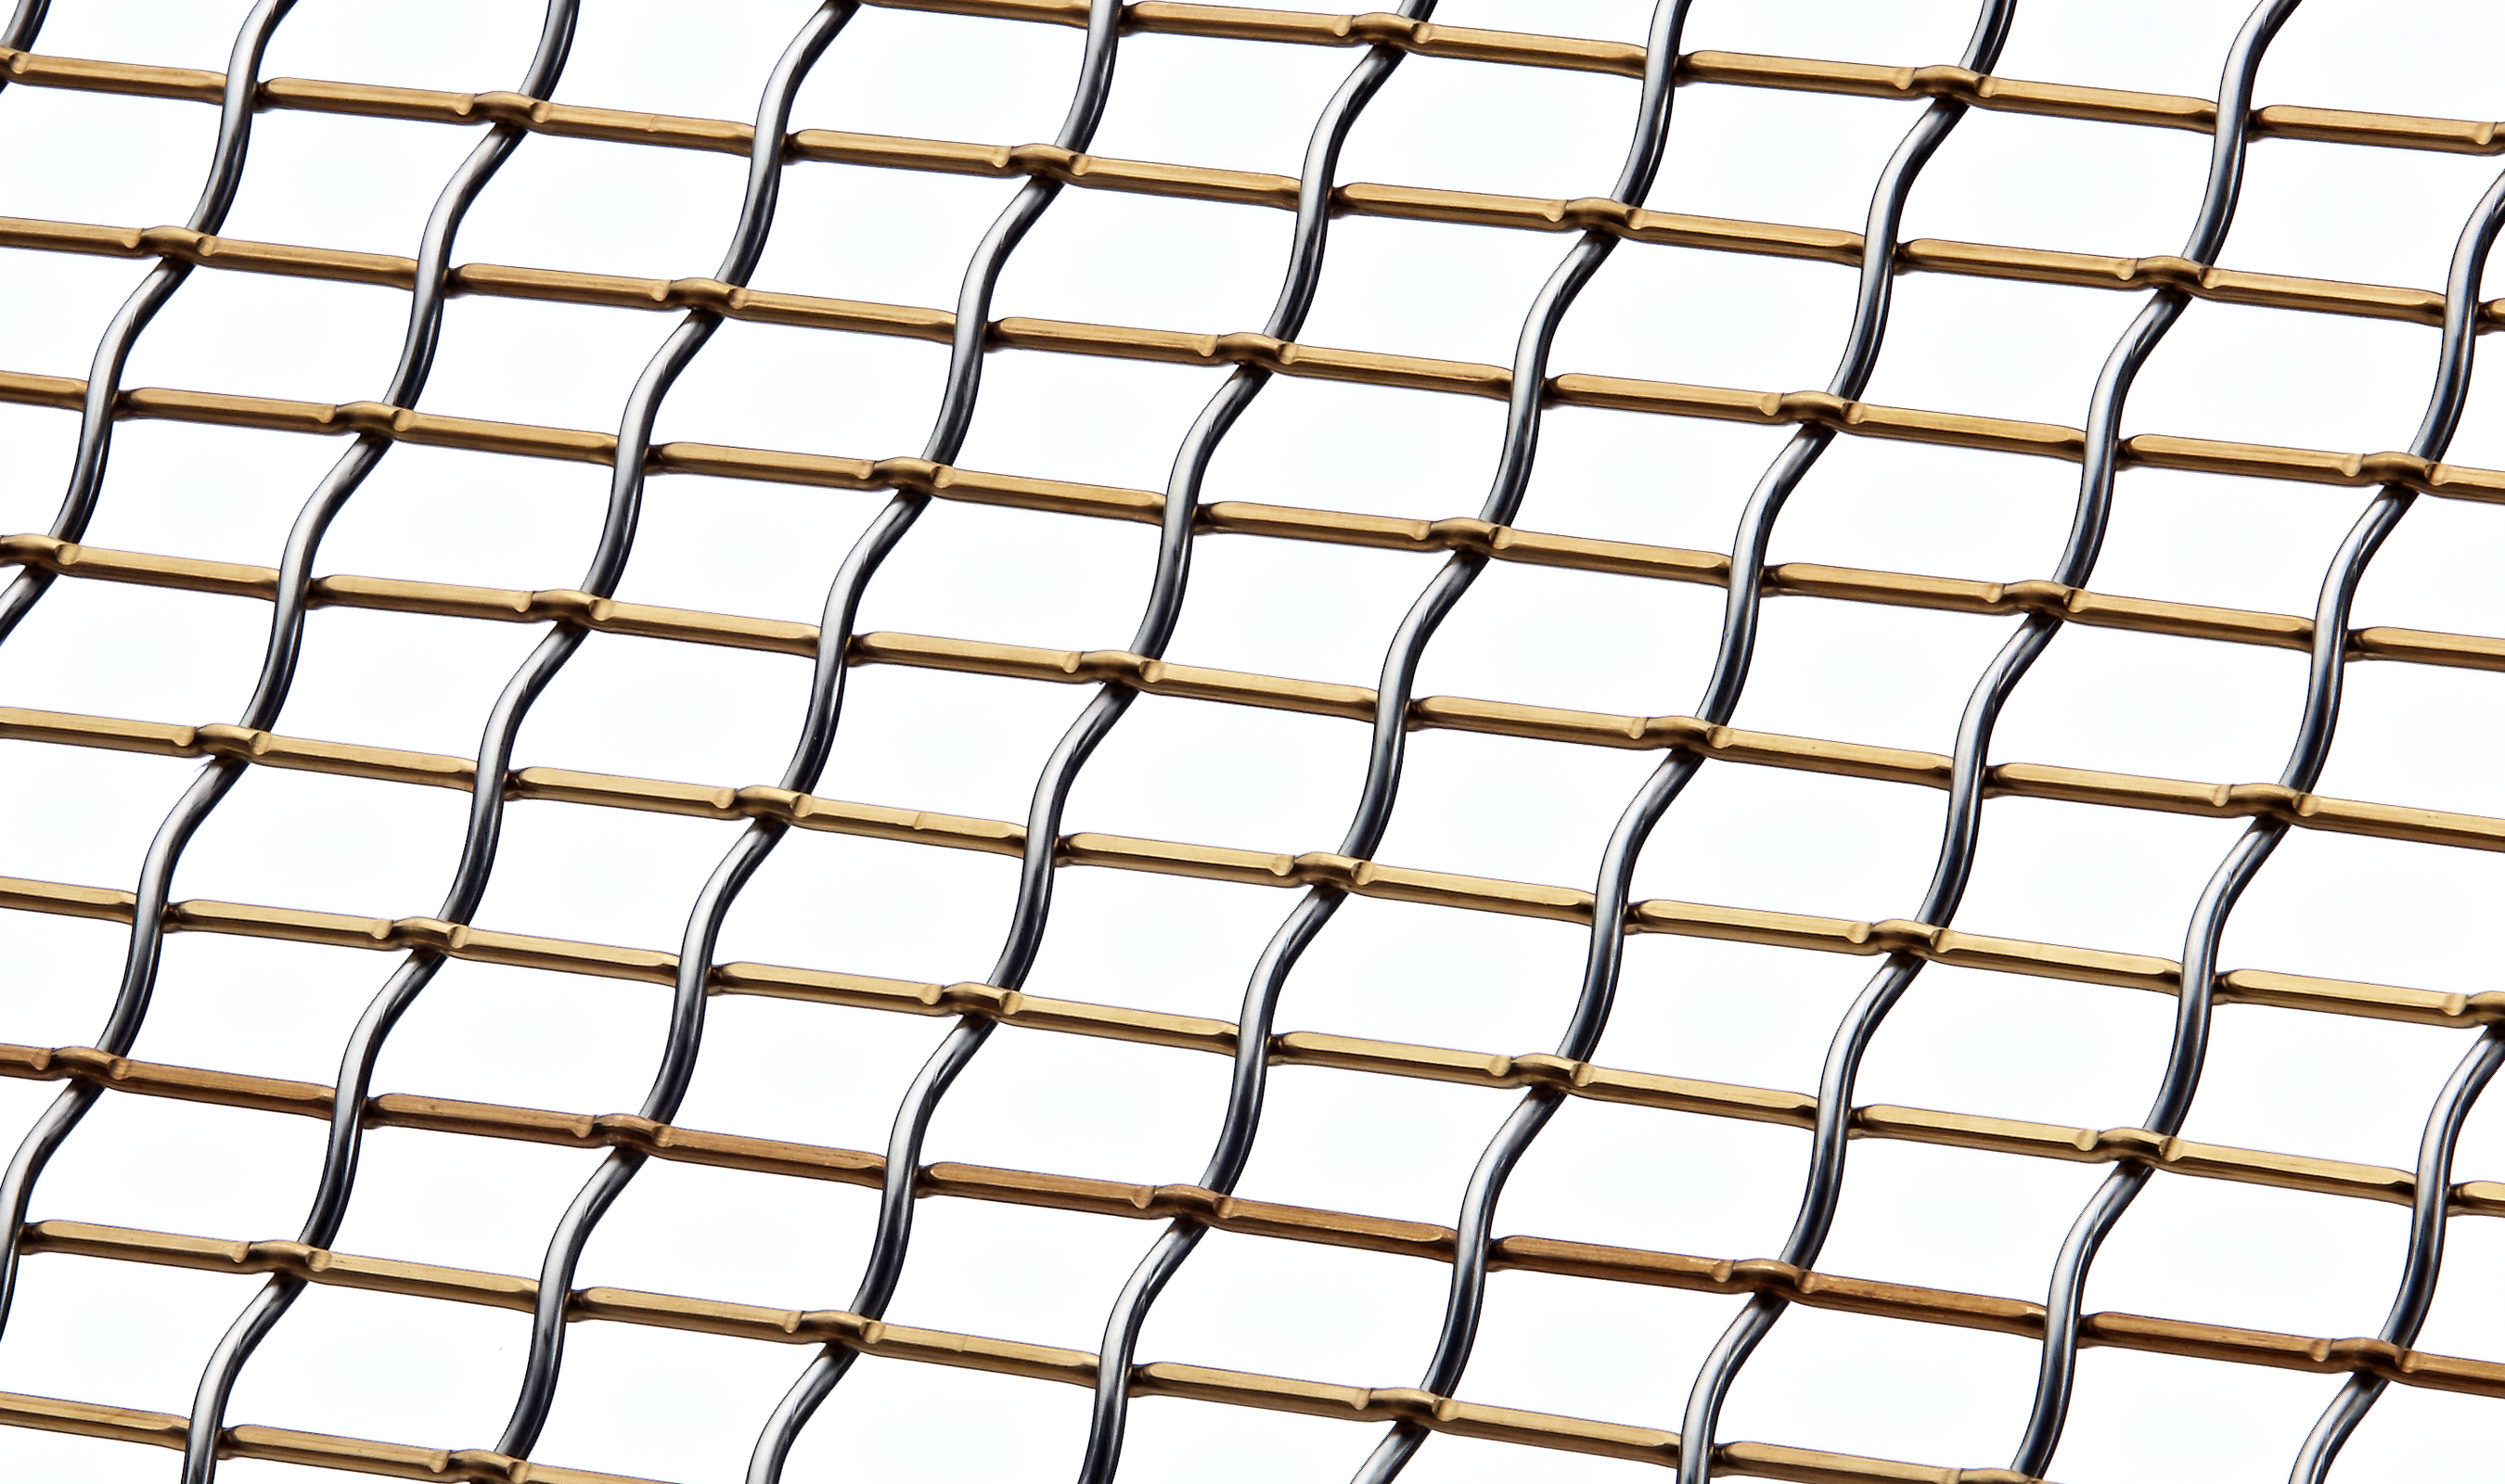 LHZ-1 Woven wire mesh in Stainless Steel and Bronze